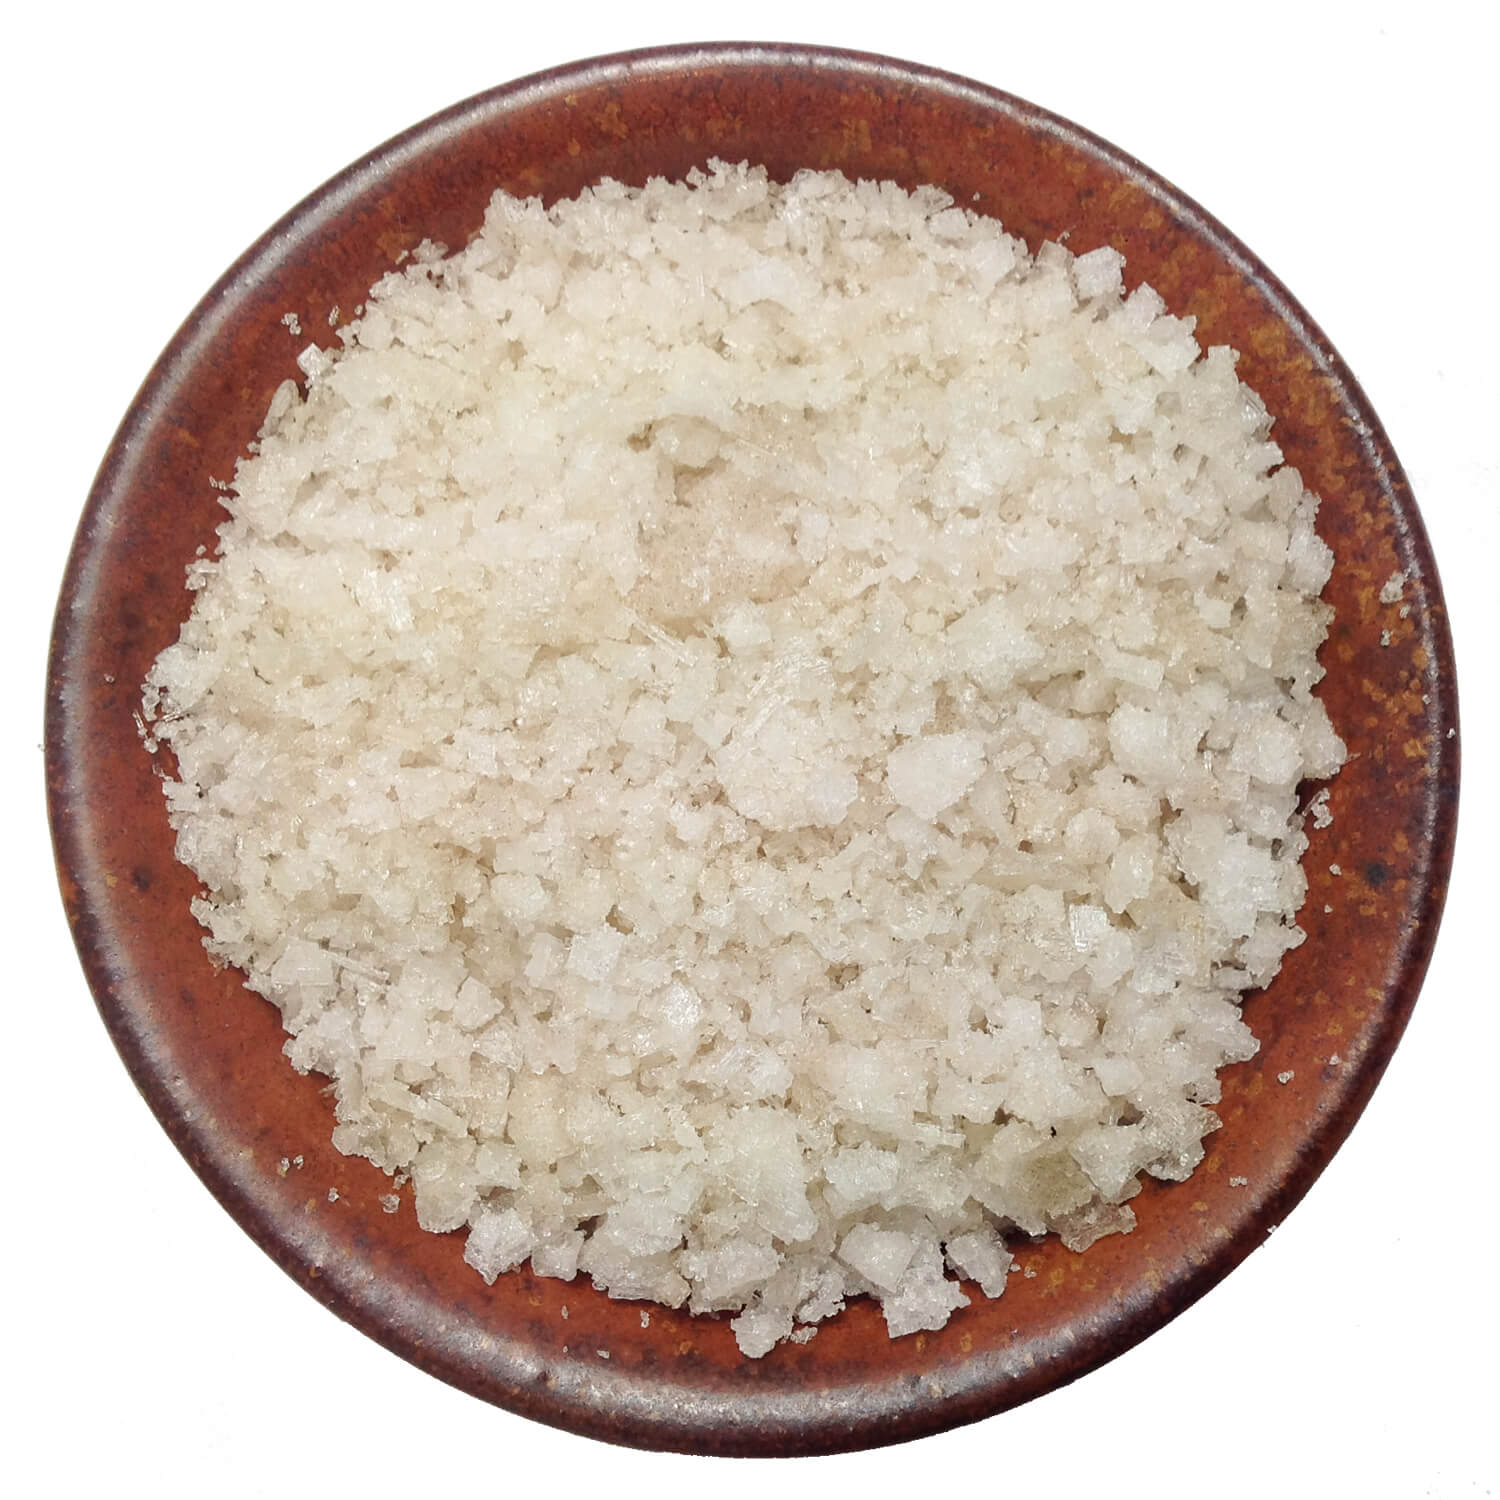 Victorian Coastal Sea Salt Smoked with Fruitwood from Yackandandah